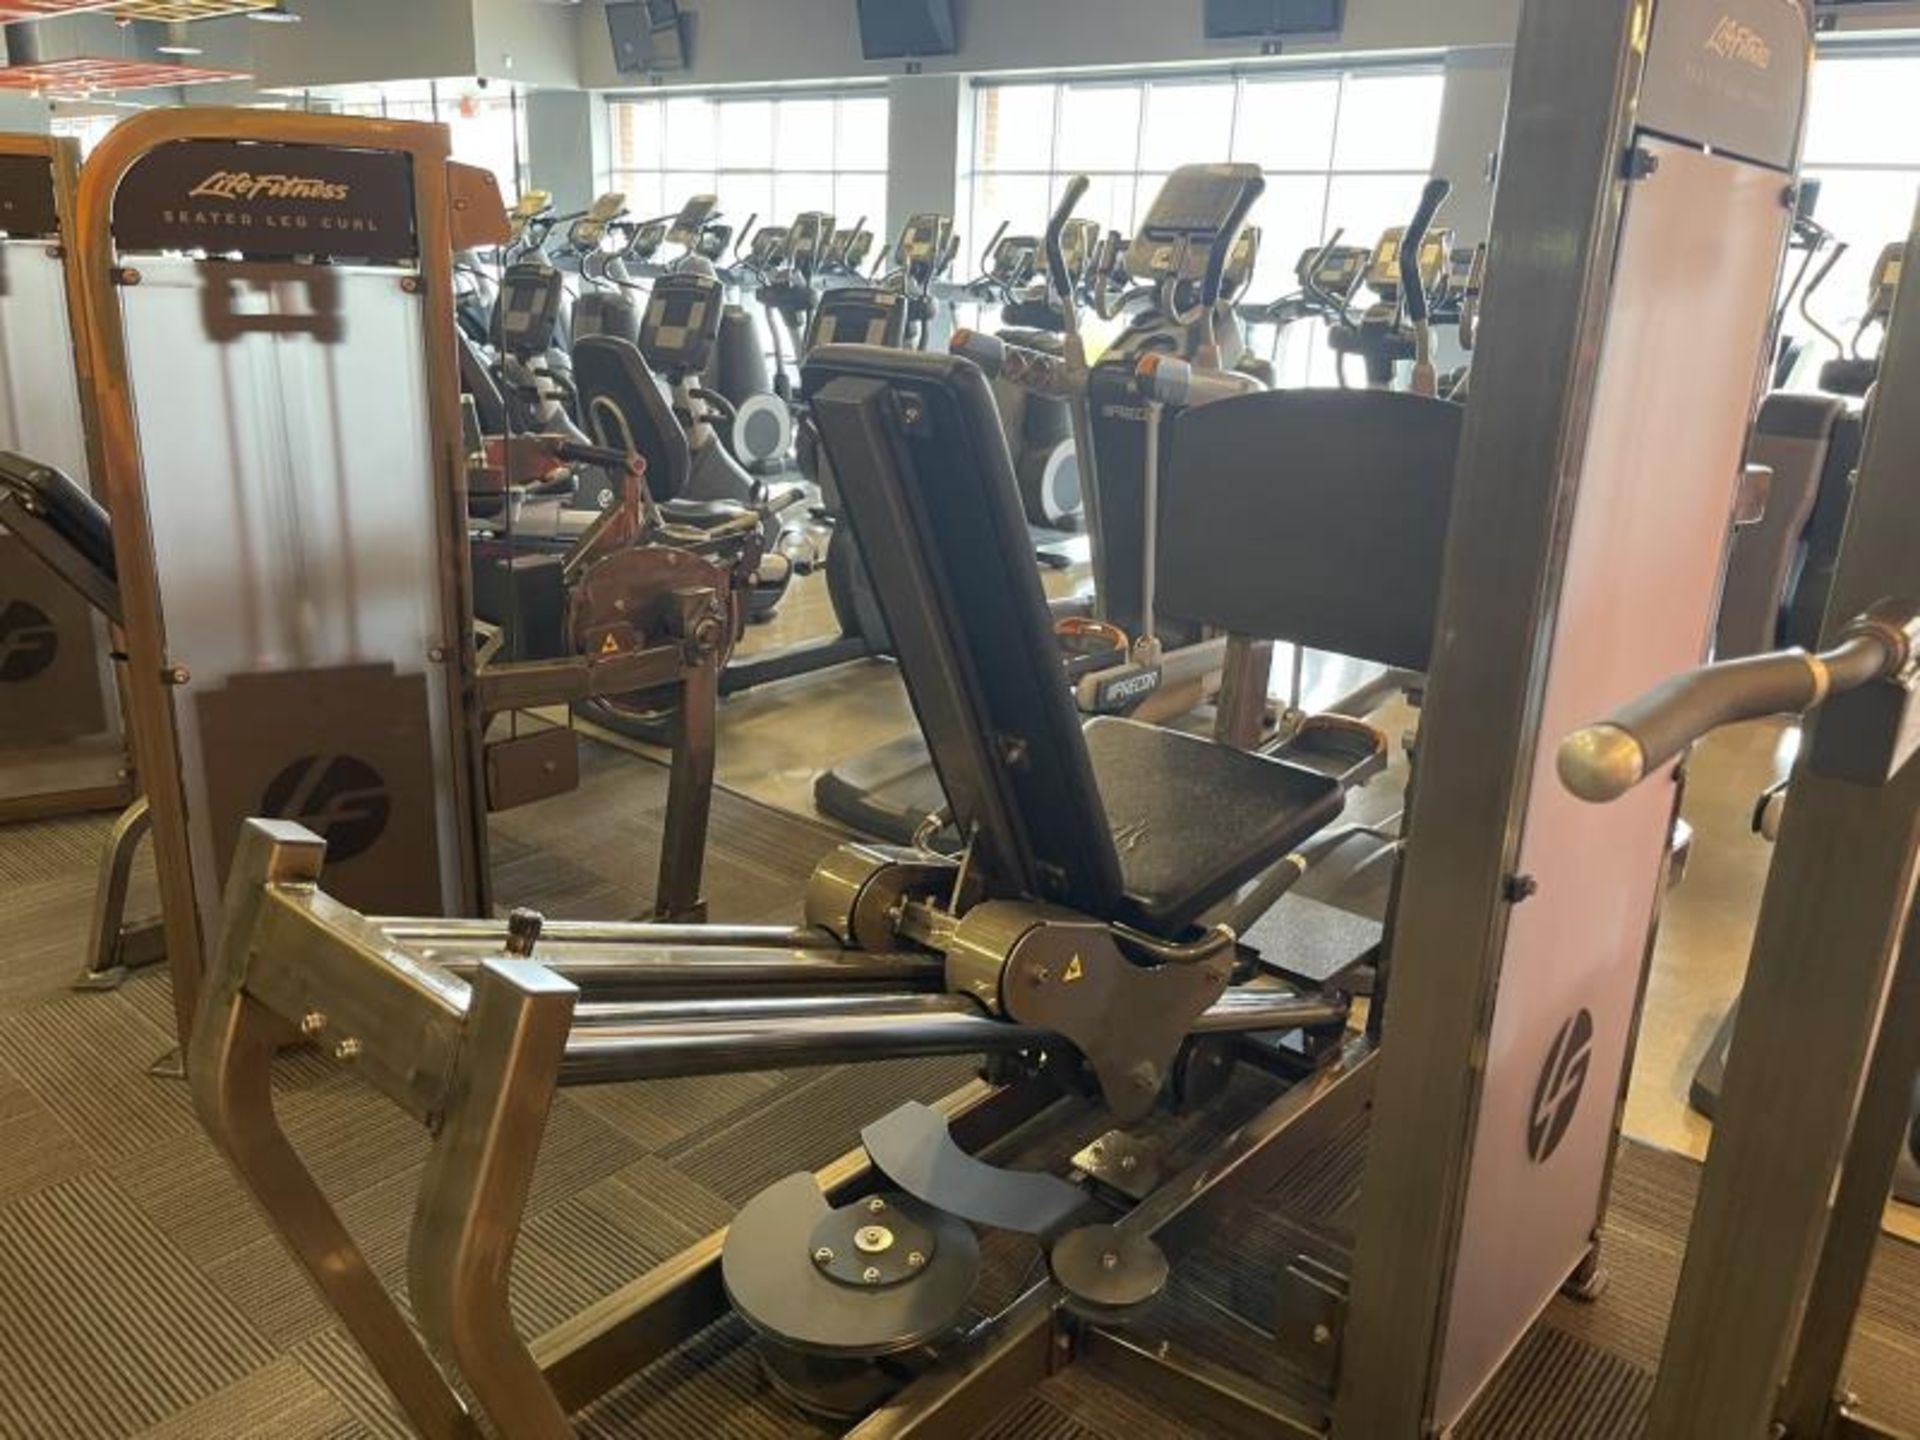 Lifer Fitness Seated Leg Press M:PSSLPE - Image 5 of 6